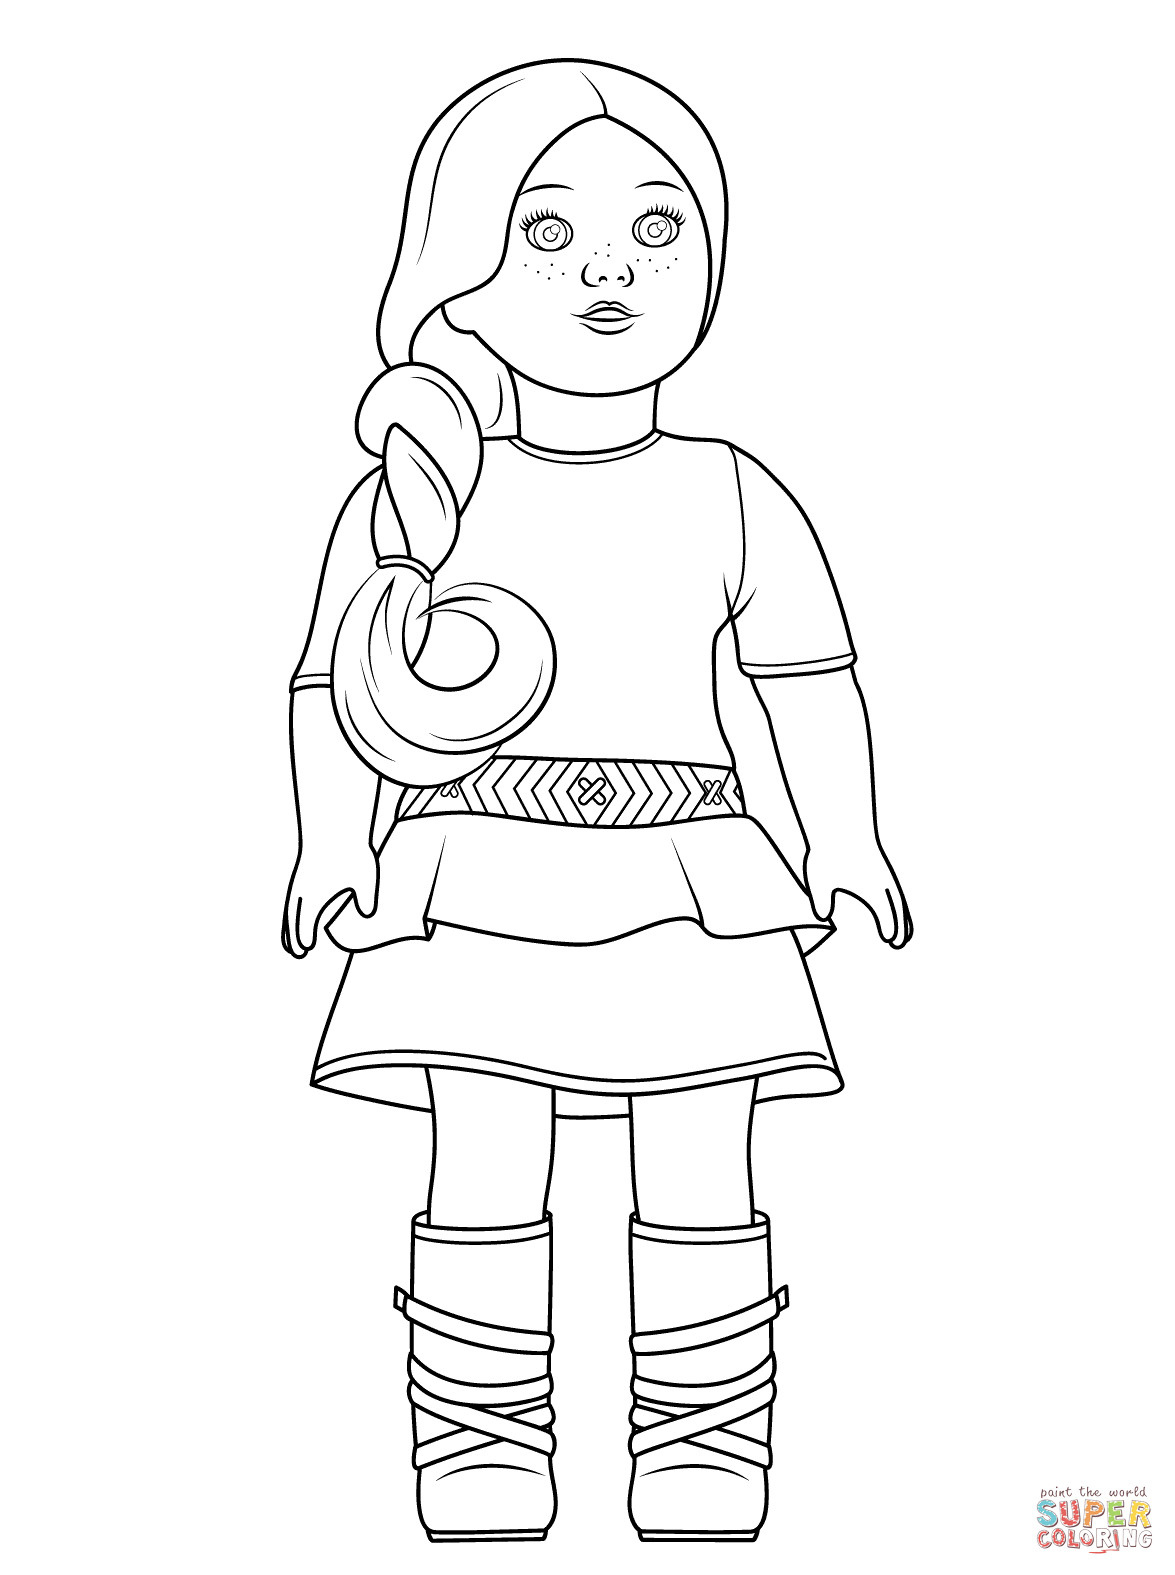 American Girl Doll Coloring Pages  American Girl Saige coloring page